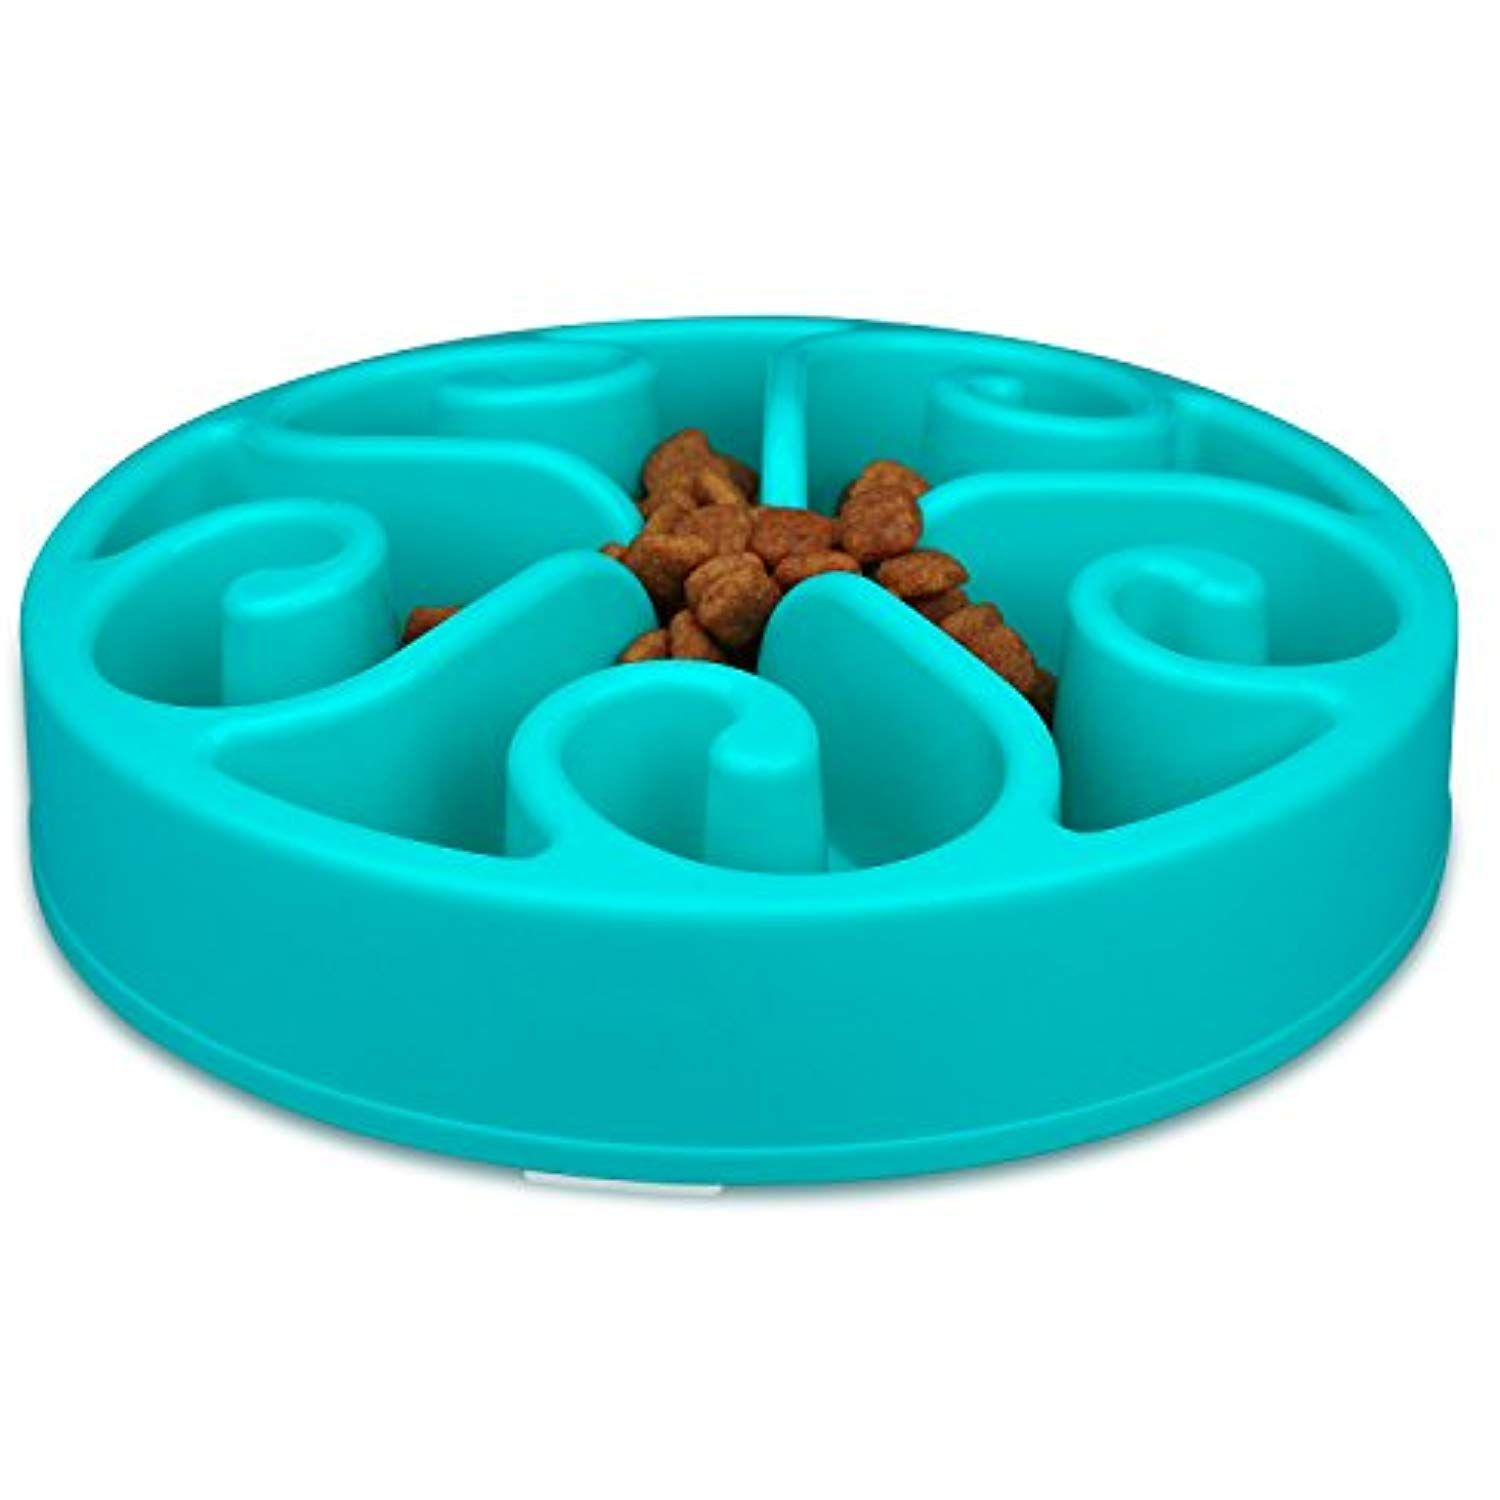 Wangstar Slow Feed Dog Bowl 8 Inch Bloat Stop Dog Puzzle Bowl